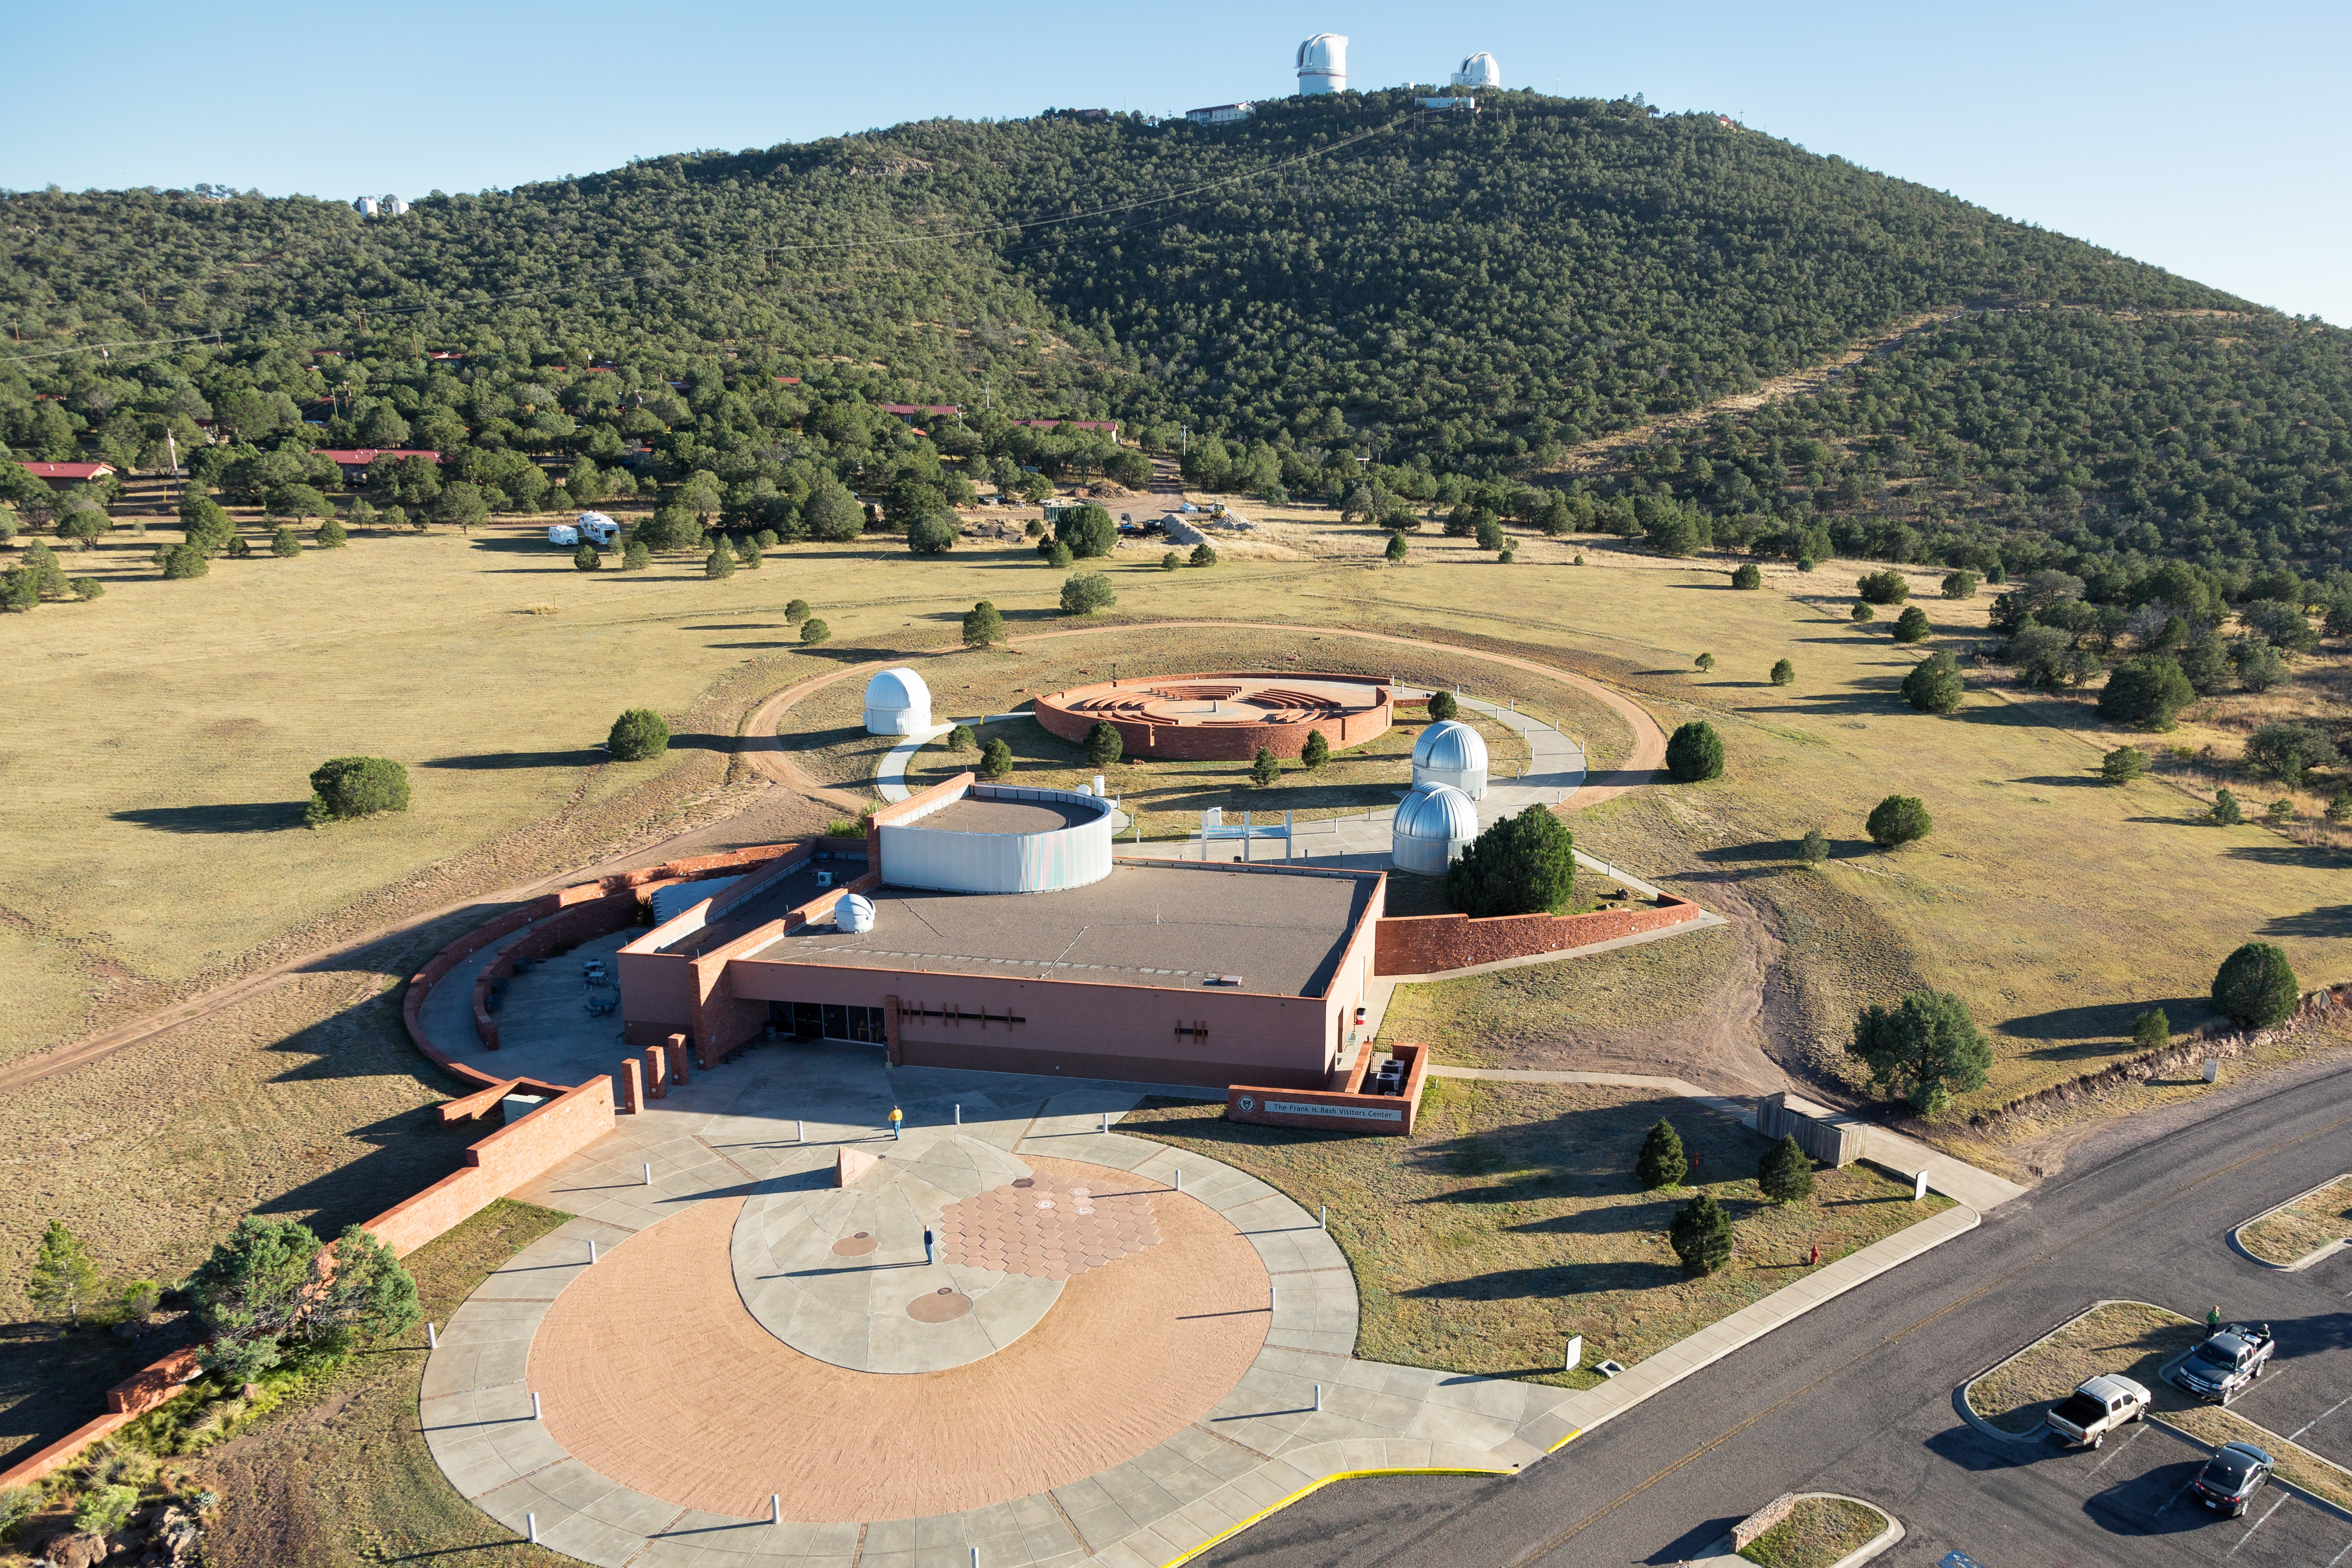 Overview of Visitors Center